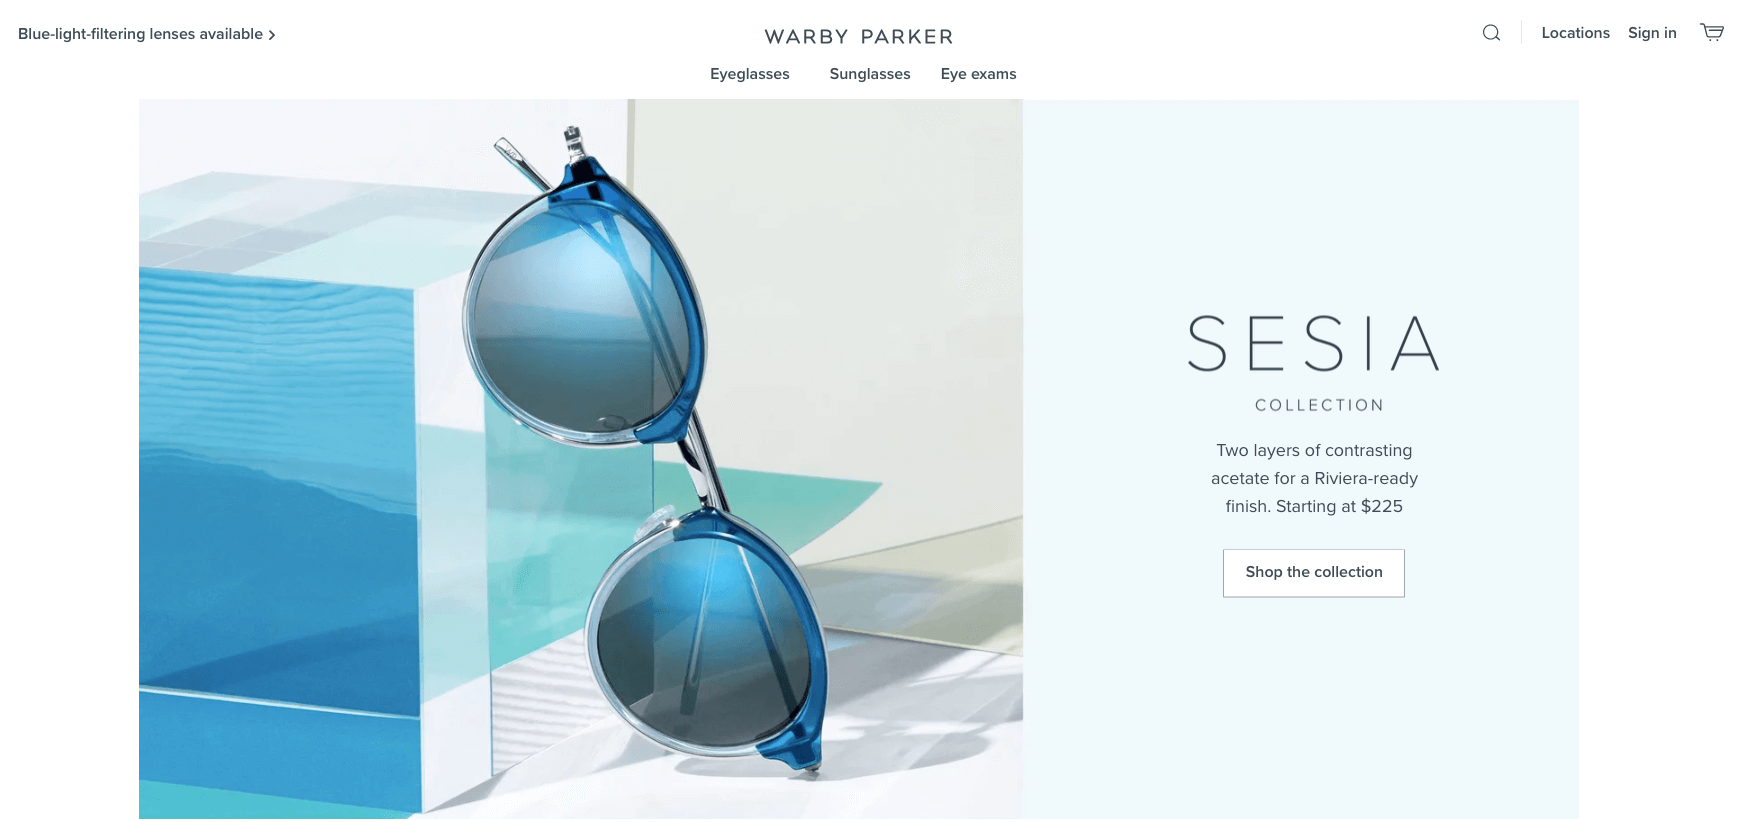 Brand storytelling - warby parker home